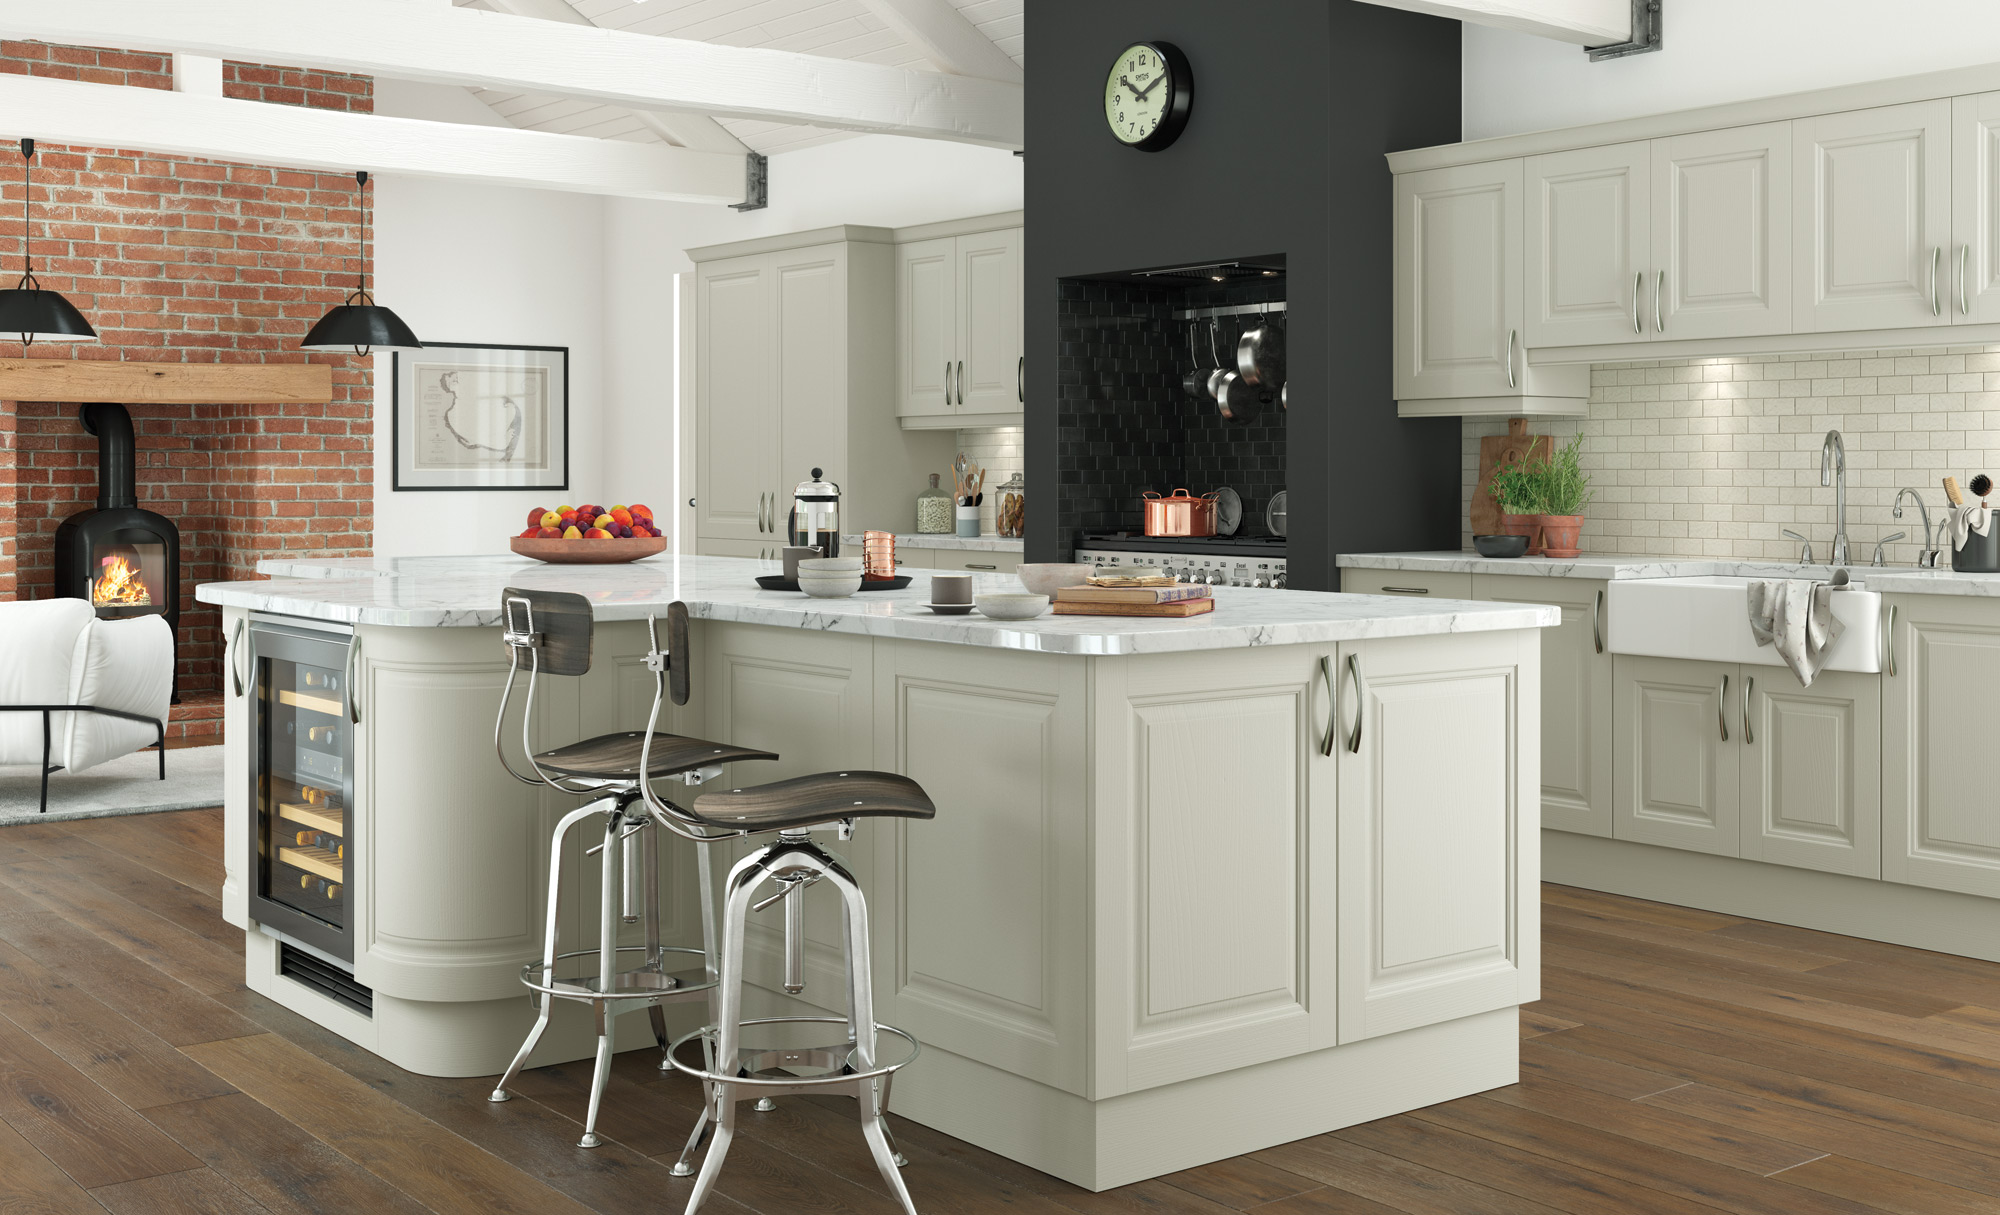 Merveilleux Design A Classic Kitchen